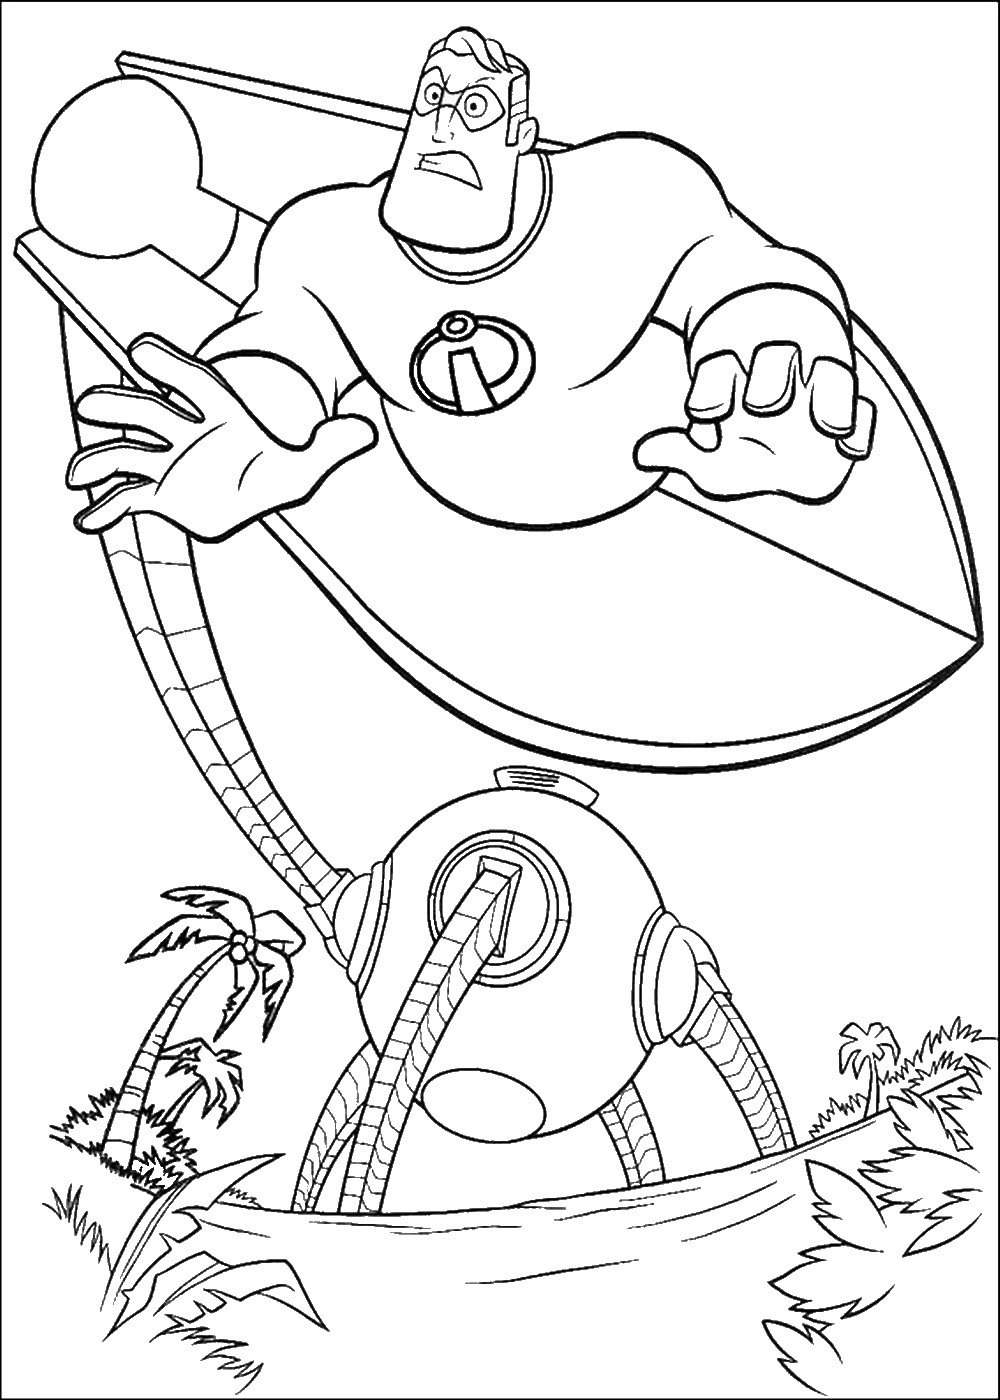 The Incredibles Coloring Pages At Getdrawings Com Free For